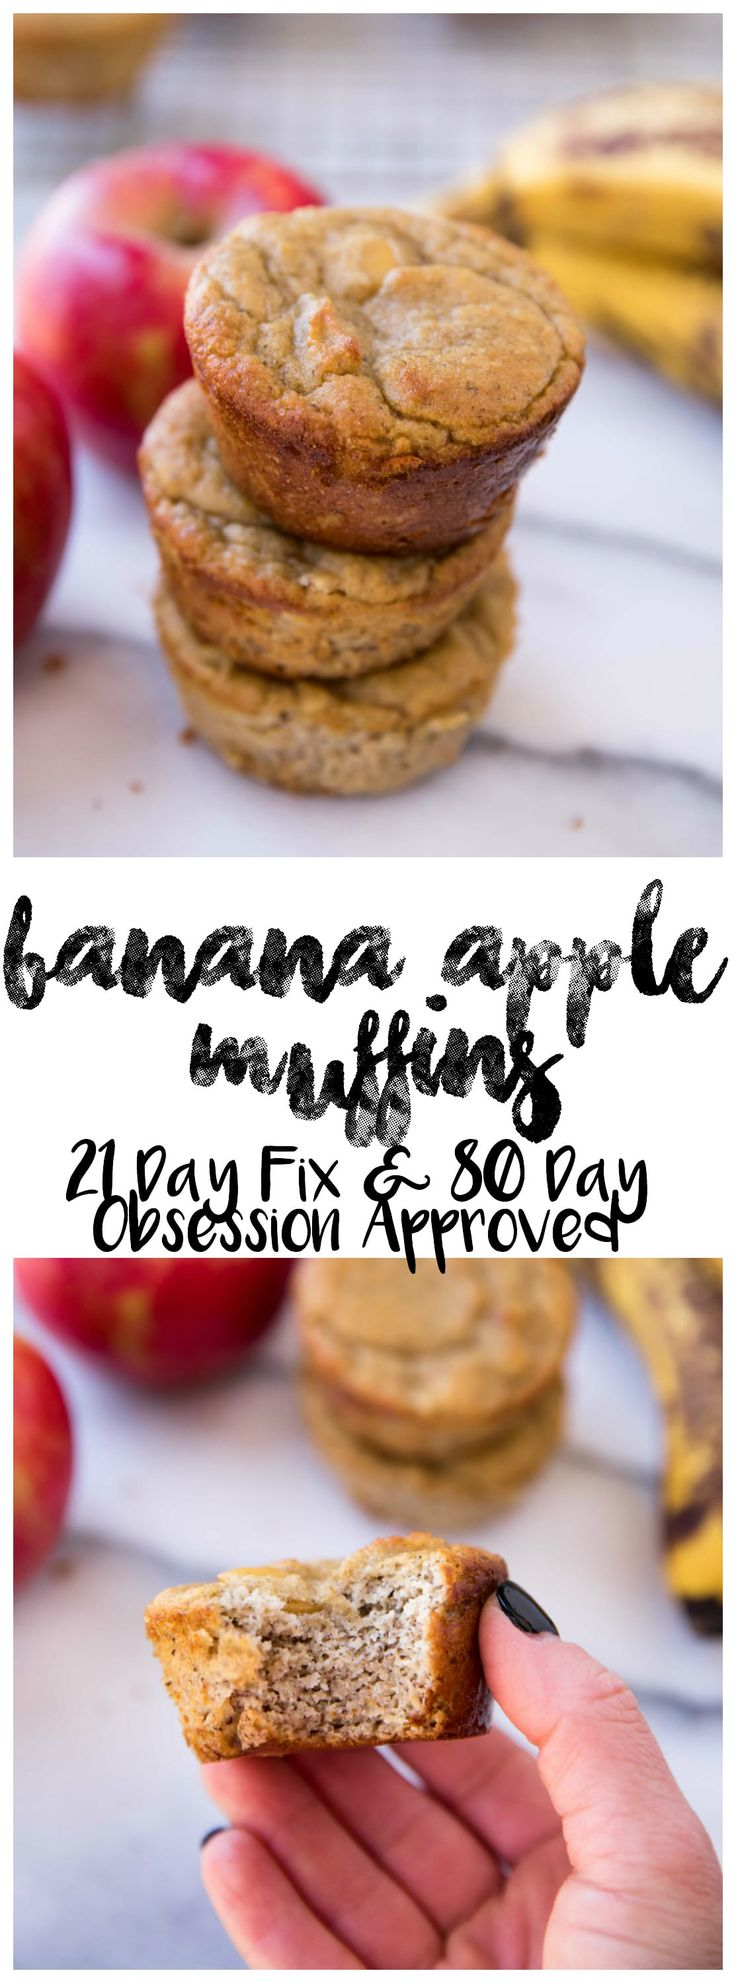 Flourless Banana Apple Muffins made in the blender with only a handful of simple ingredients! They're gluten-free, dairy-free, refined sugar free and 21 Day Fix and 80 Day Obsession meal plan approved; so they make a deliciously healthy treat for when those cravings hit. via @kimscravings